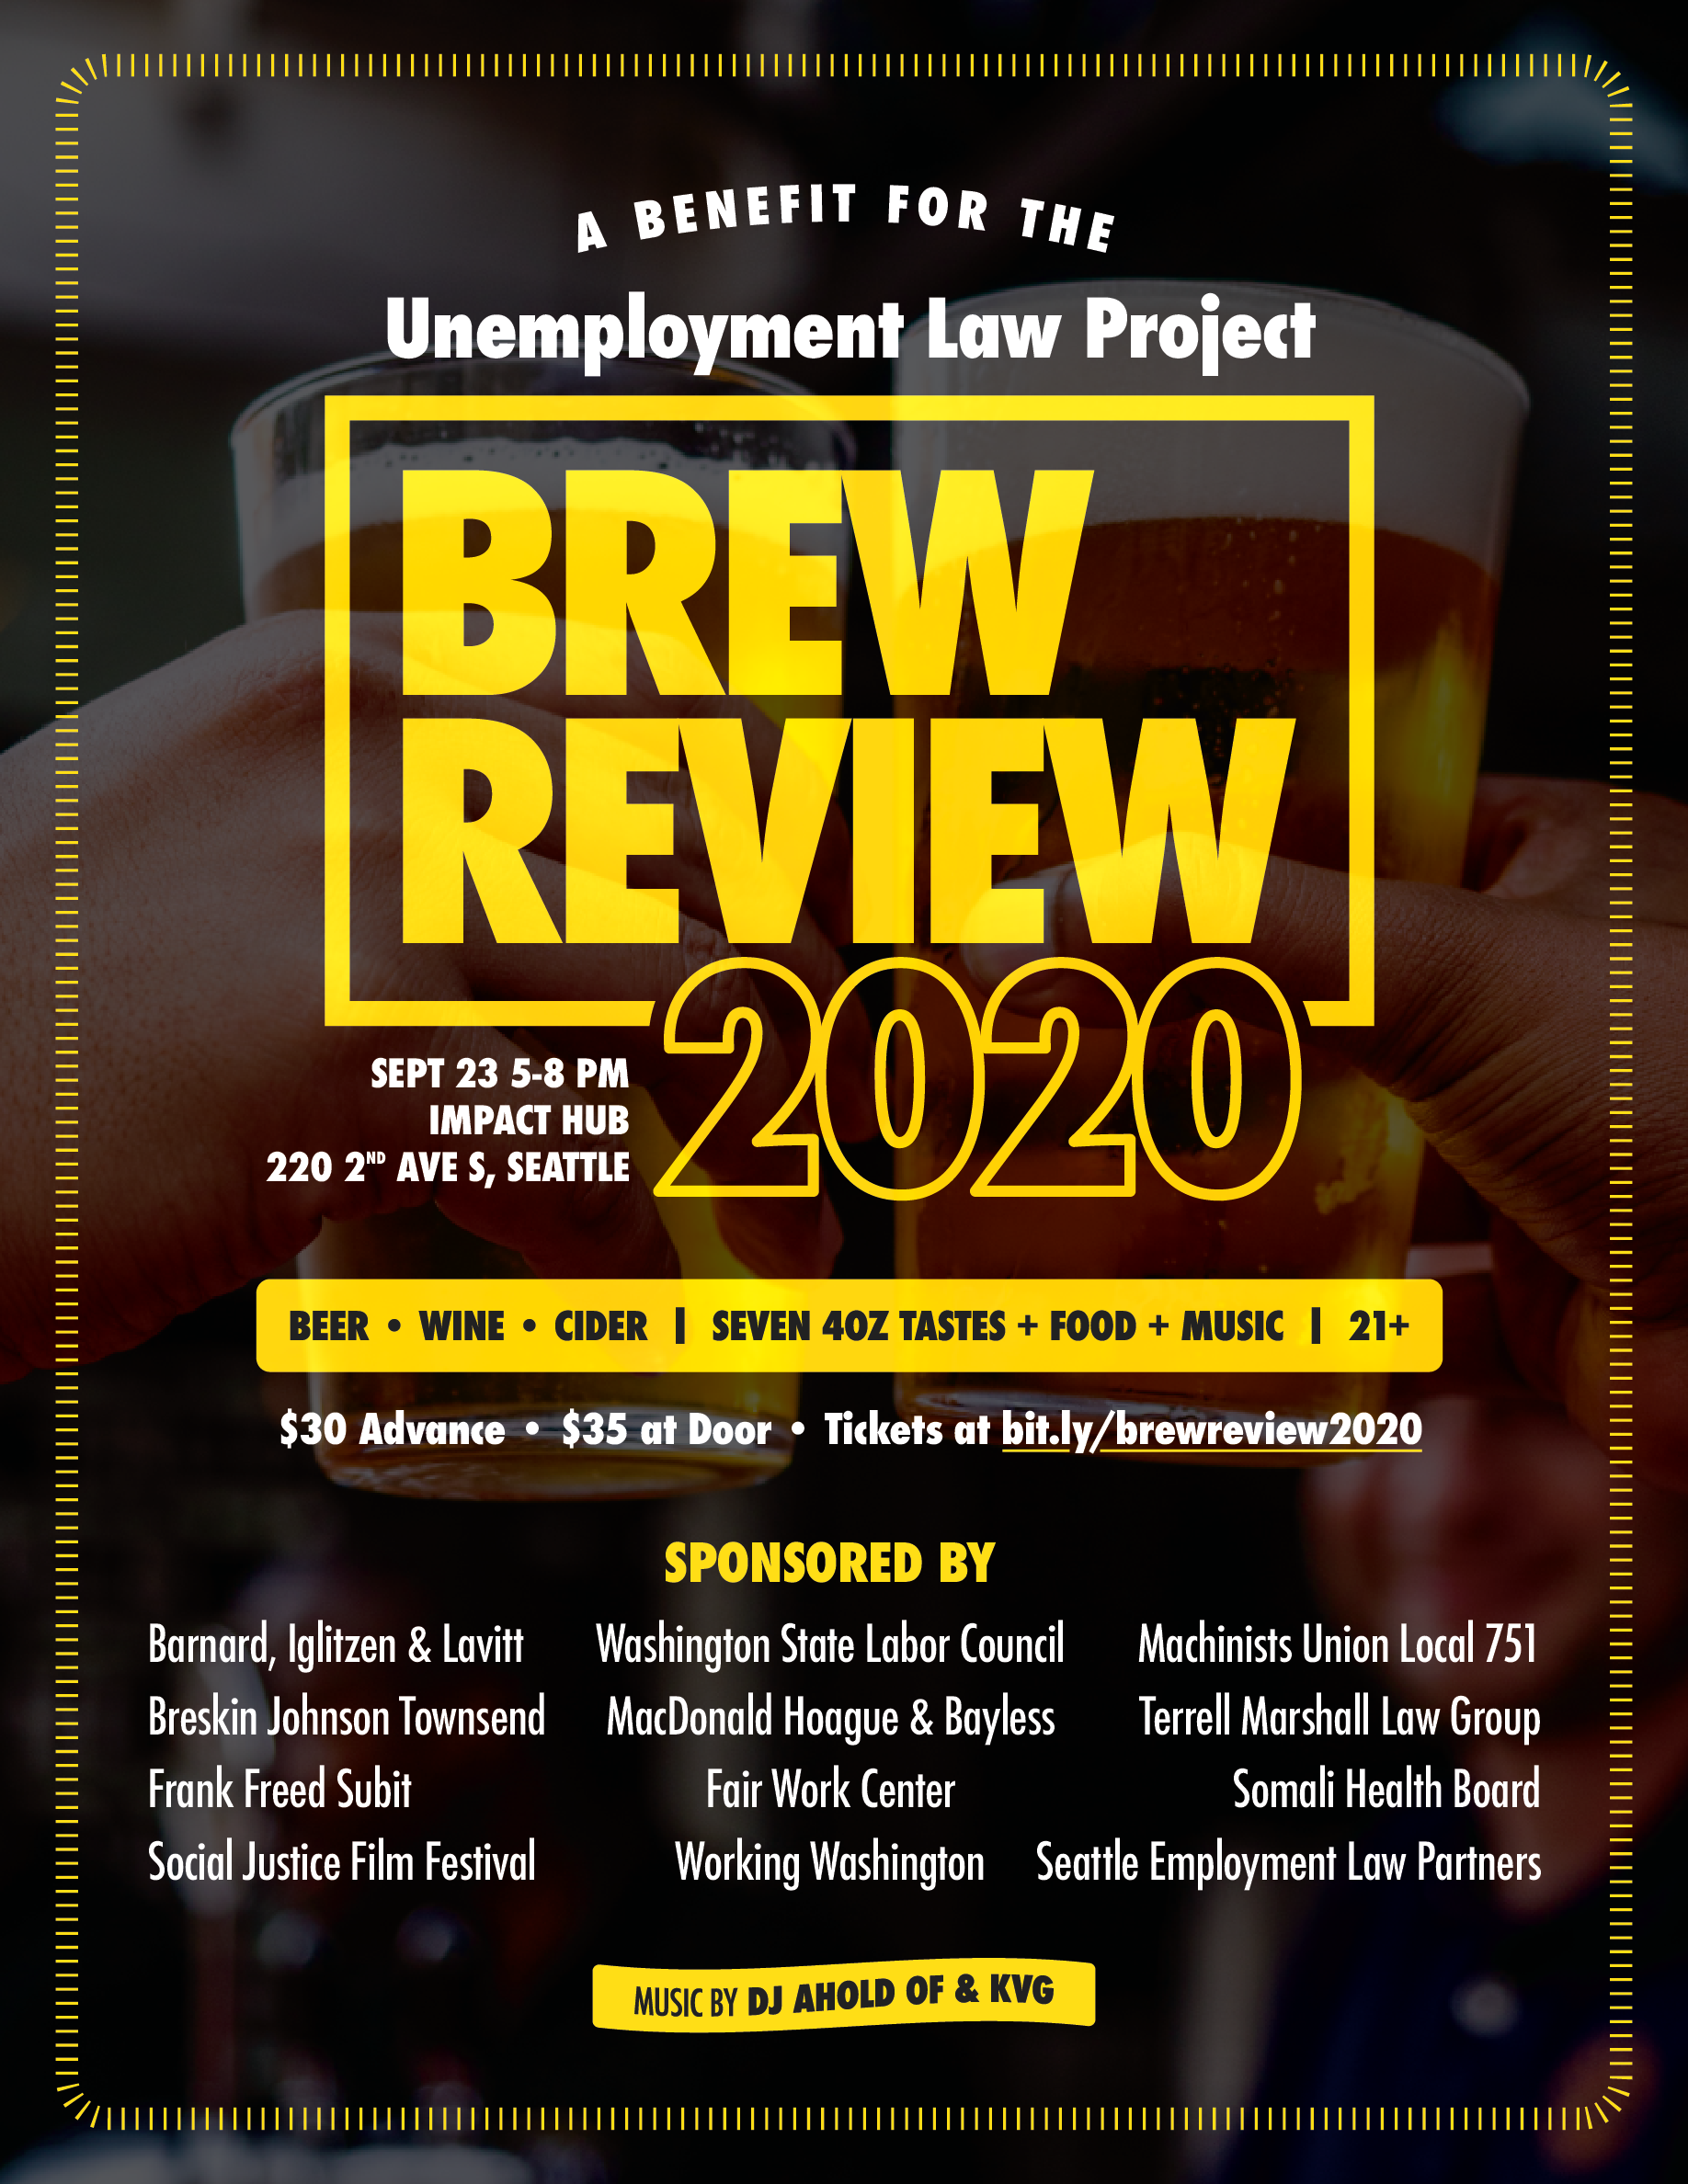 Contact Unemployment Law Project